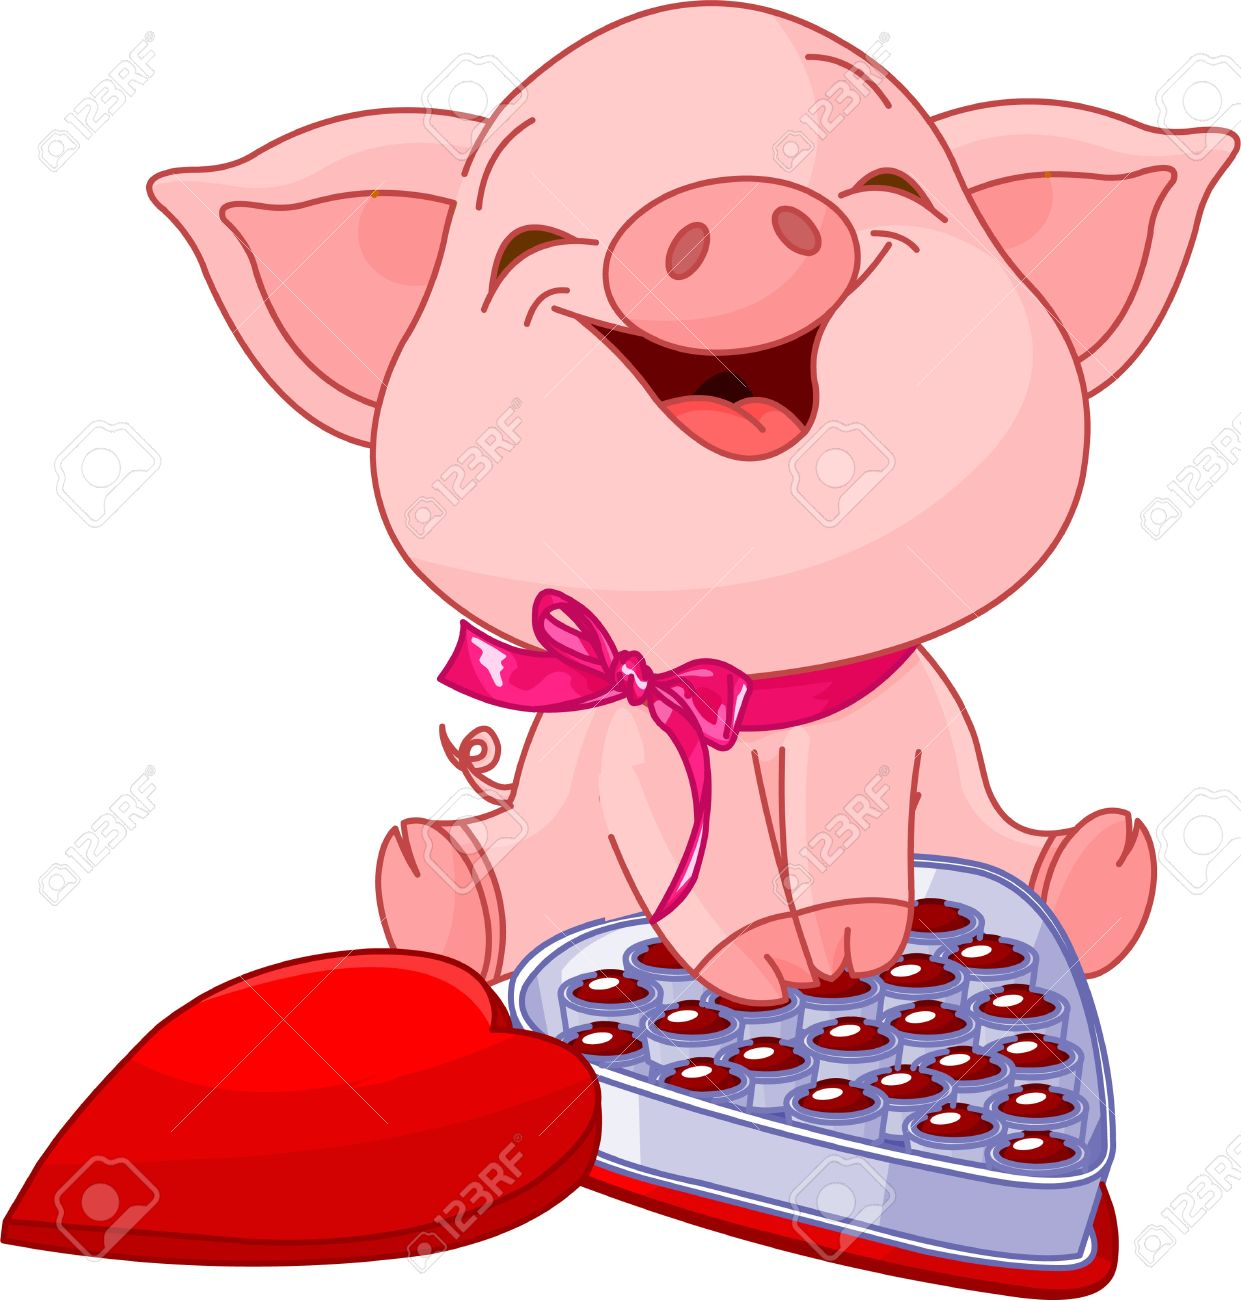 Cute pretty pig at valentines day with chocolates royalty free cute pretty pig at valentines day with chocolates stock vector 8623531 voltagebd Image collections